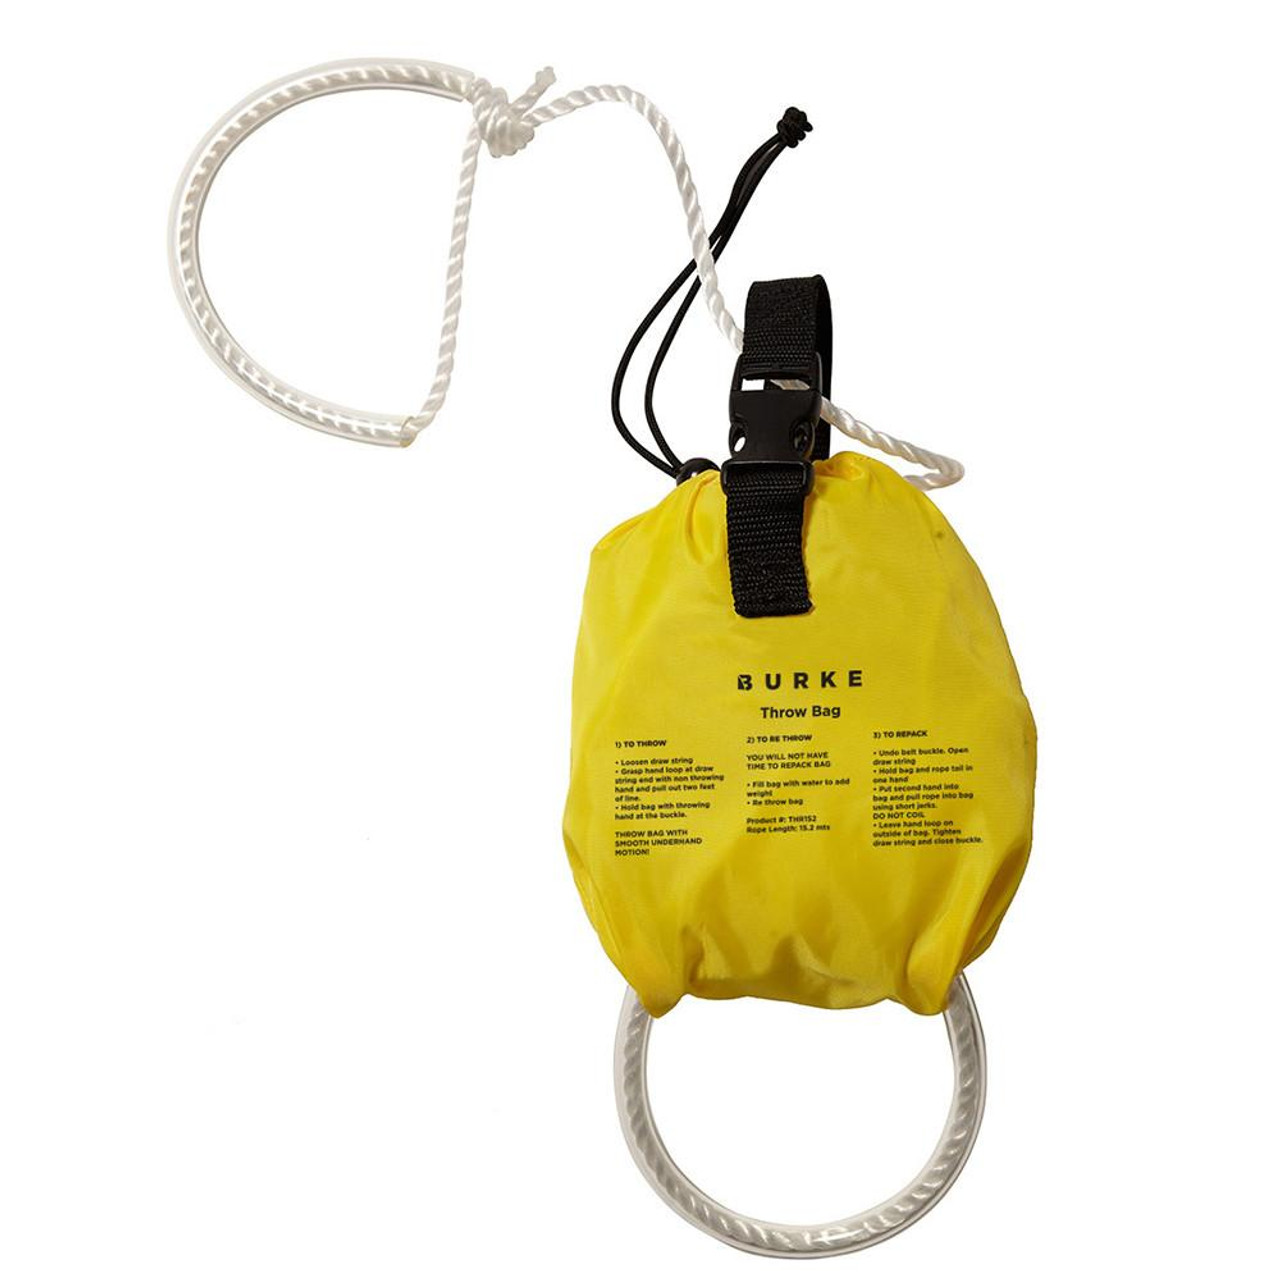 Features | Grab handles at each end of the line | 15.2 metres of 8mm floating rope | Nylon bag | Clear instructions printed on the bag | Quick release draw string with toggle | Webbing attachment handle with quick release buckle